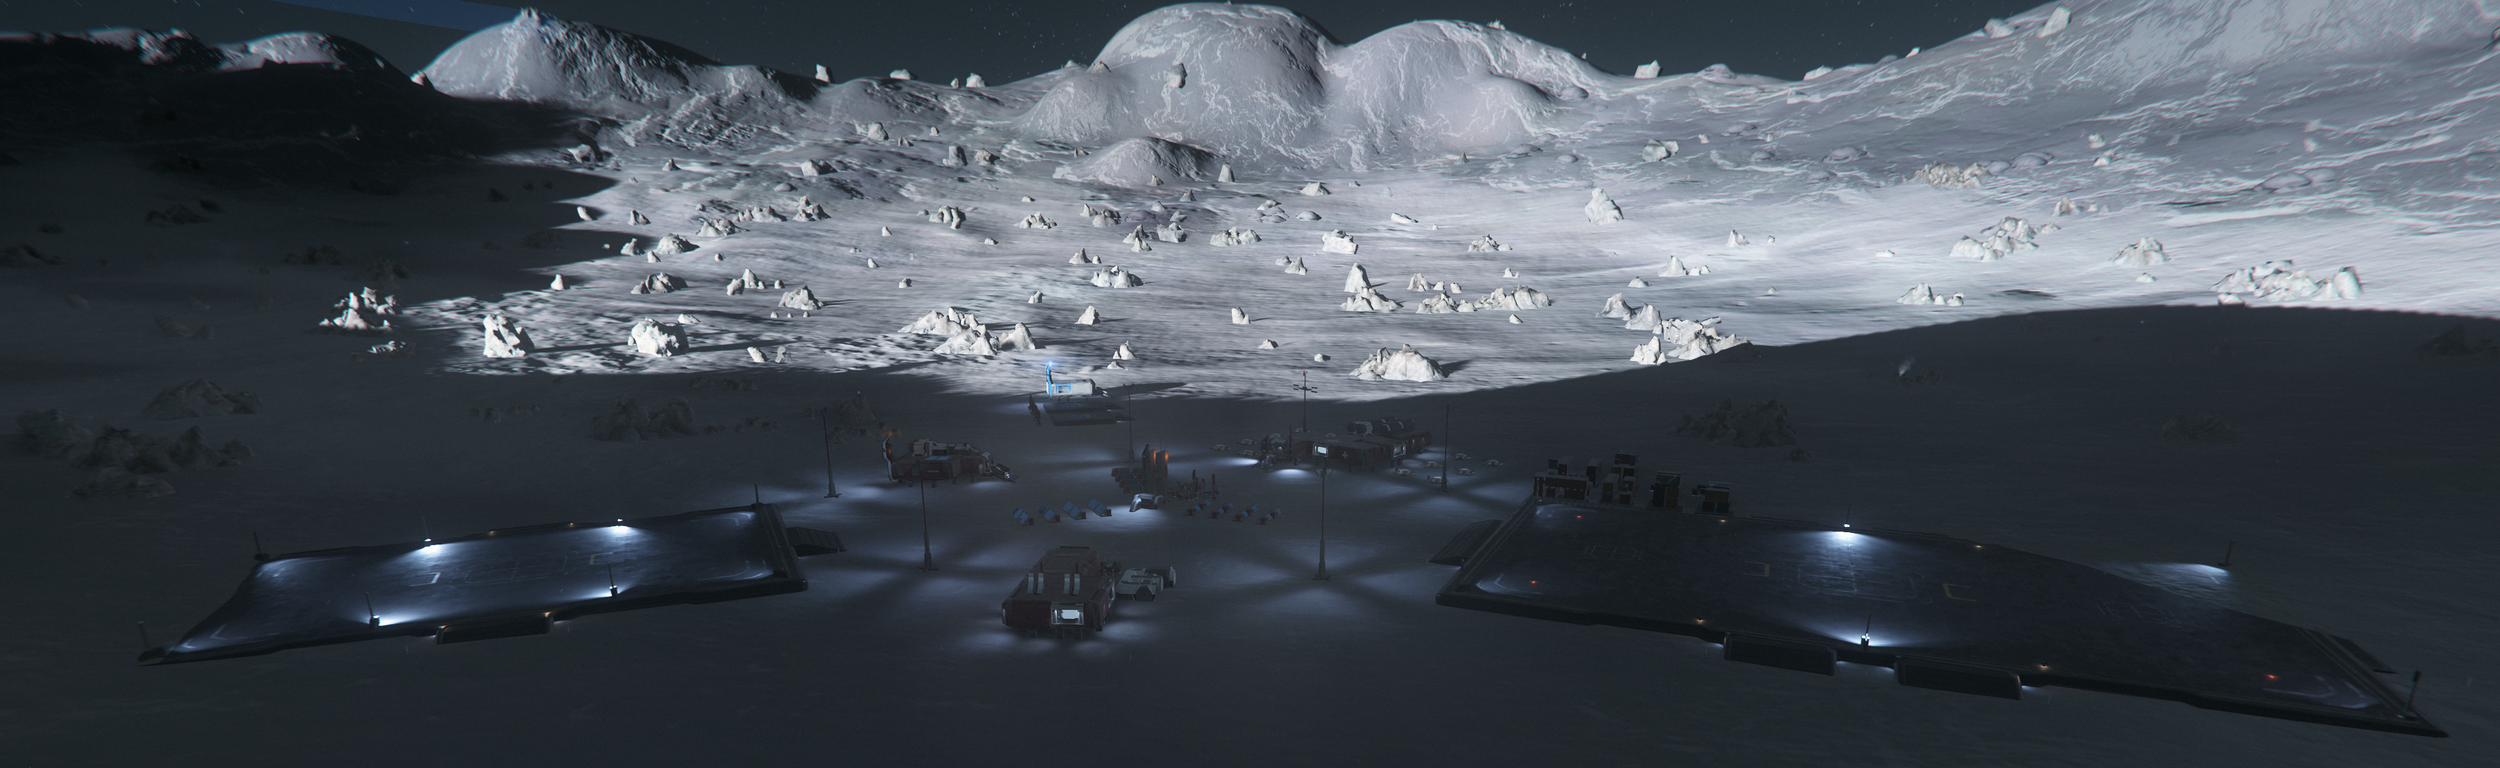 Hickes Research Outpost